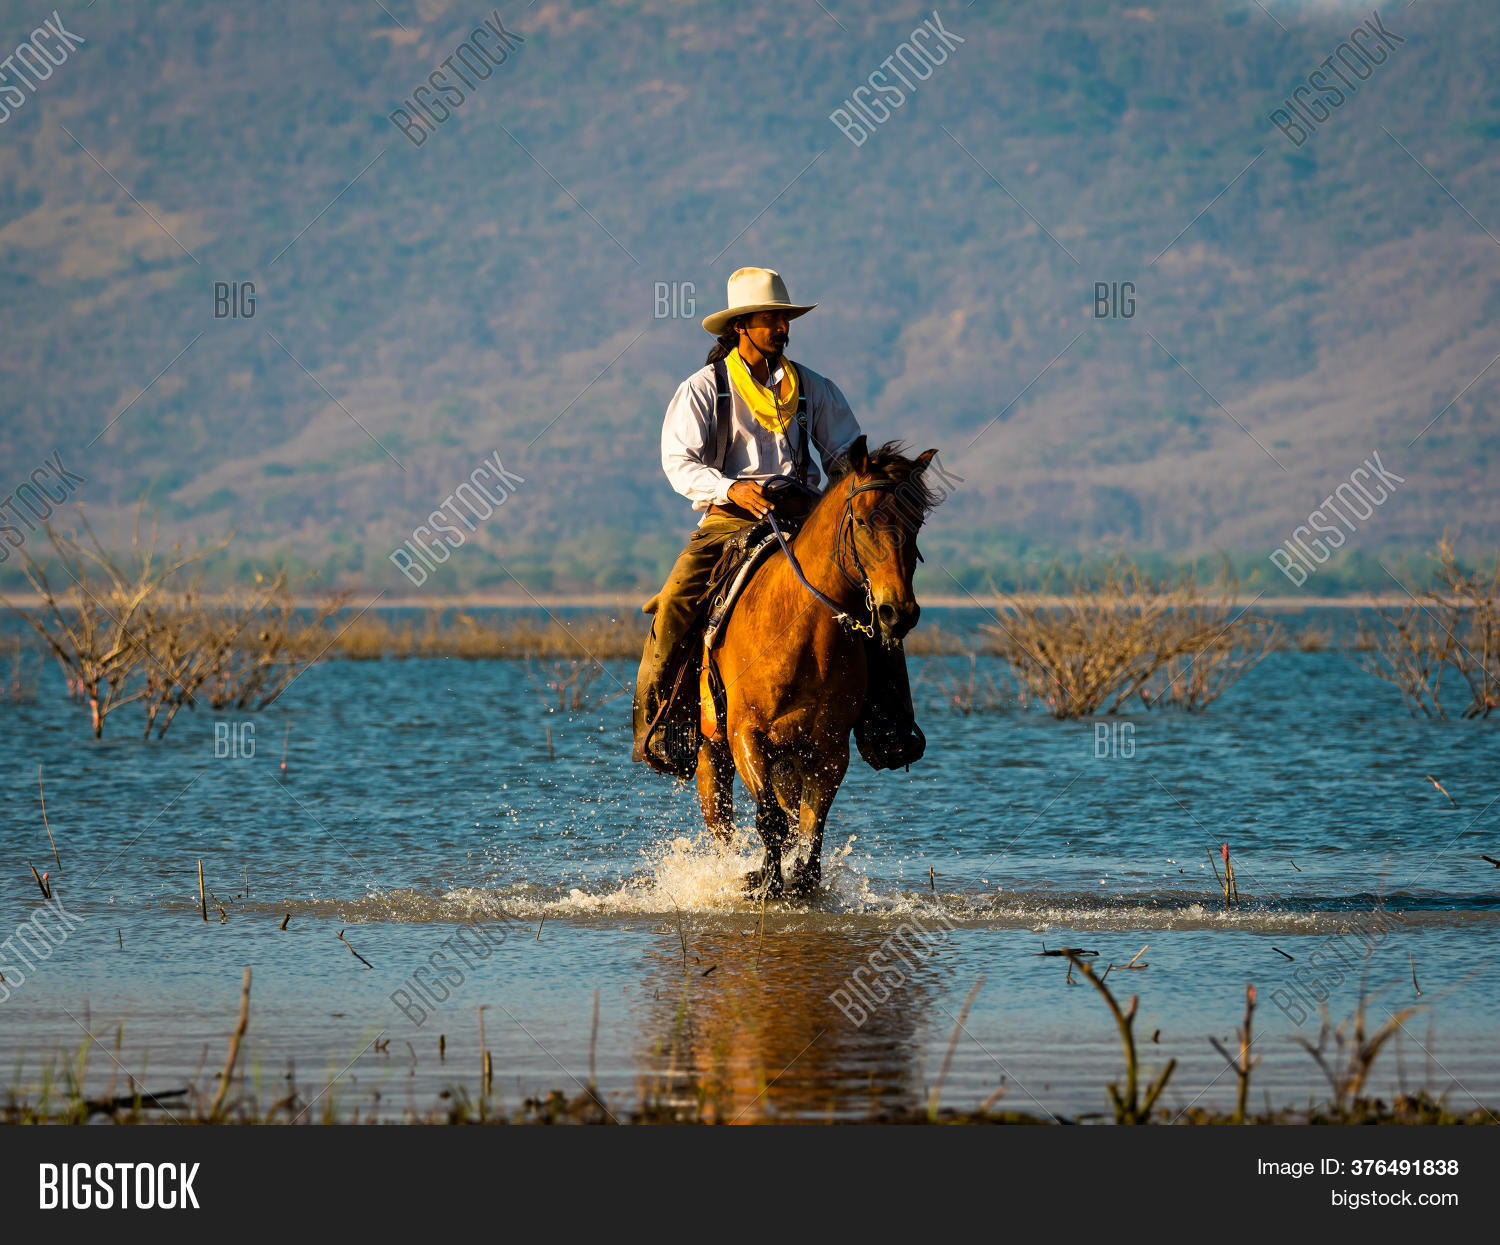 Western Cowboy Riding Image Photo Free Trial Bigstock